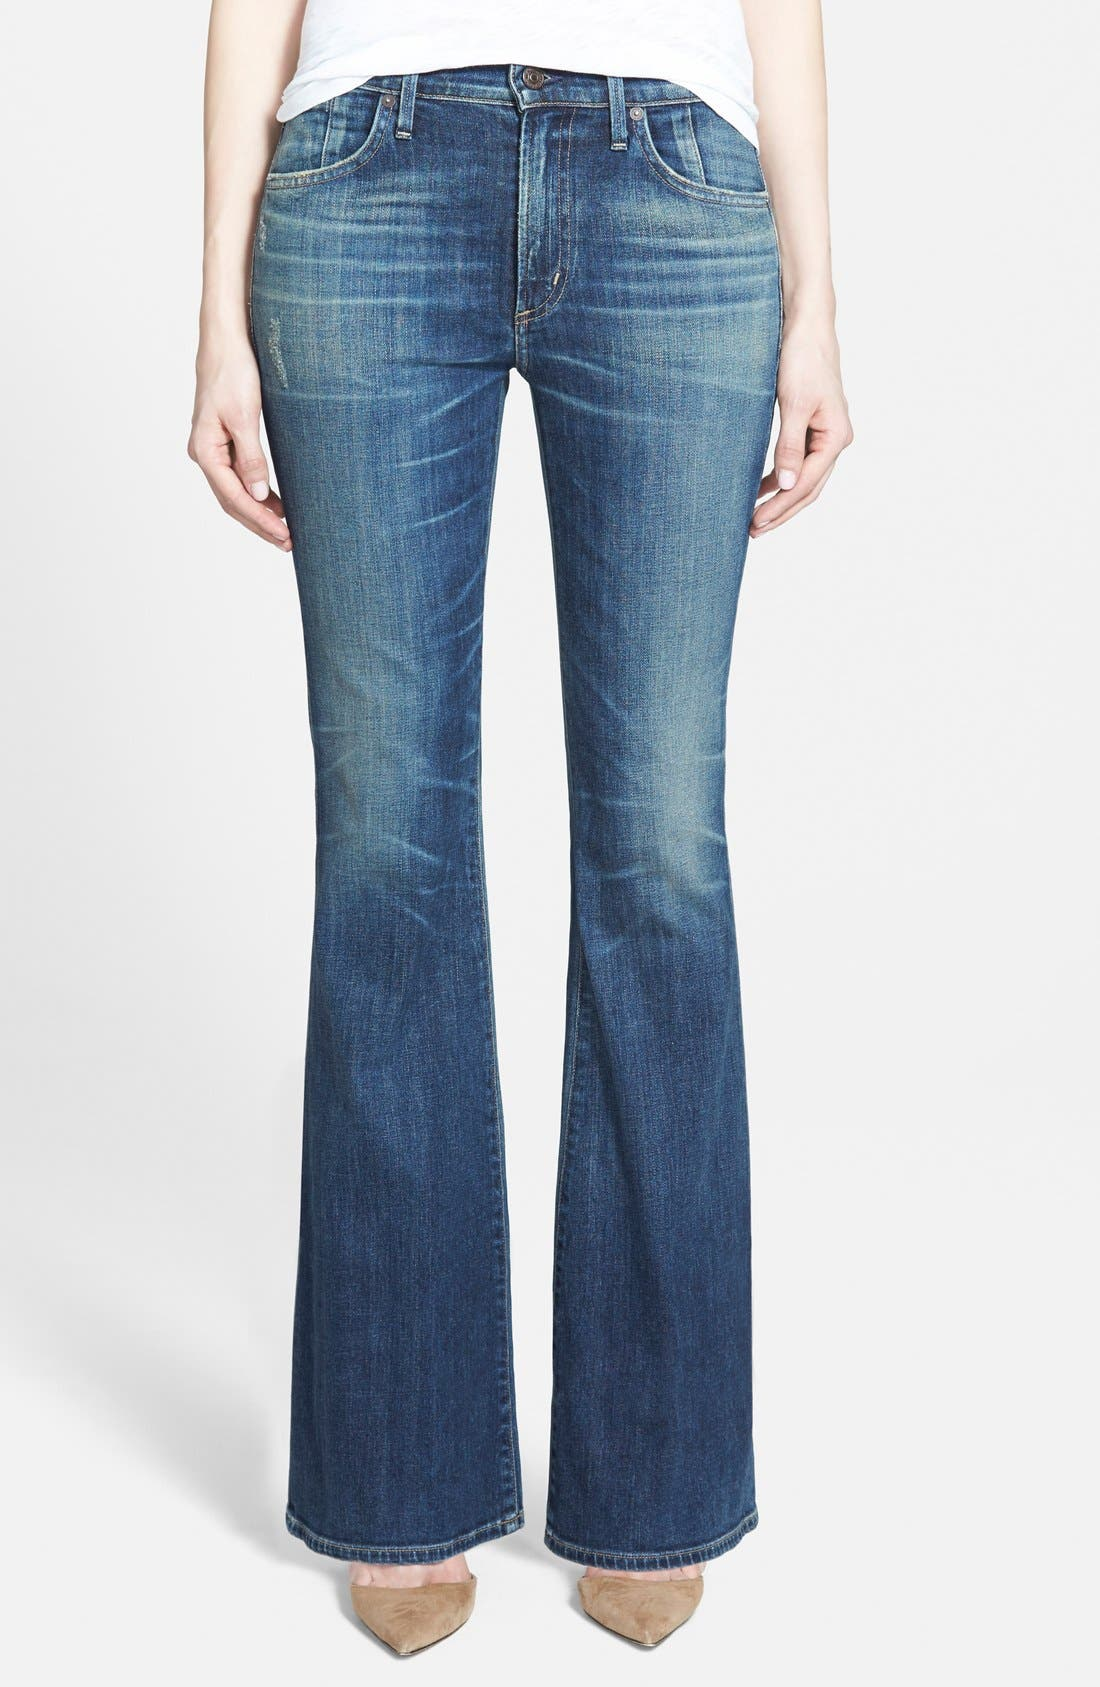 Alternate Image 1 Selected - Citizens of Humanity 'Fleetwood' High Rise Flare Jeans (Harvest Moon) (Petite)